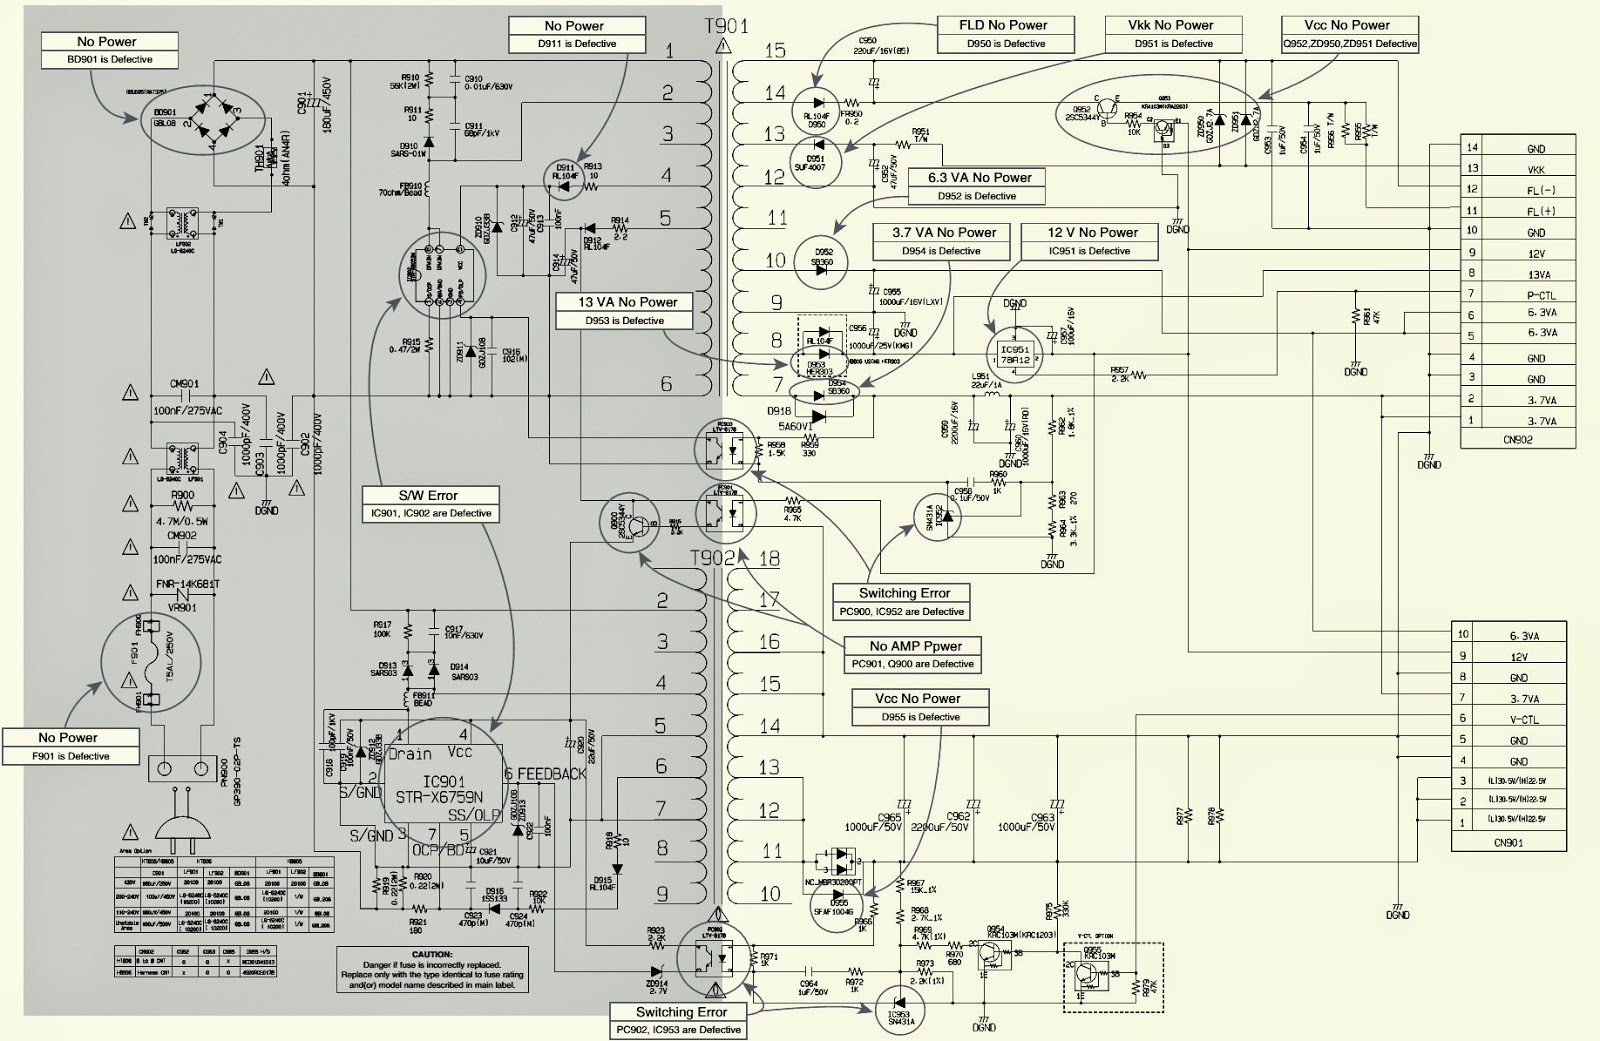 LG HT806ST - SMPS-[STR-X6759N]- (Power Supply) SCHEMATIC (Circuit ...